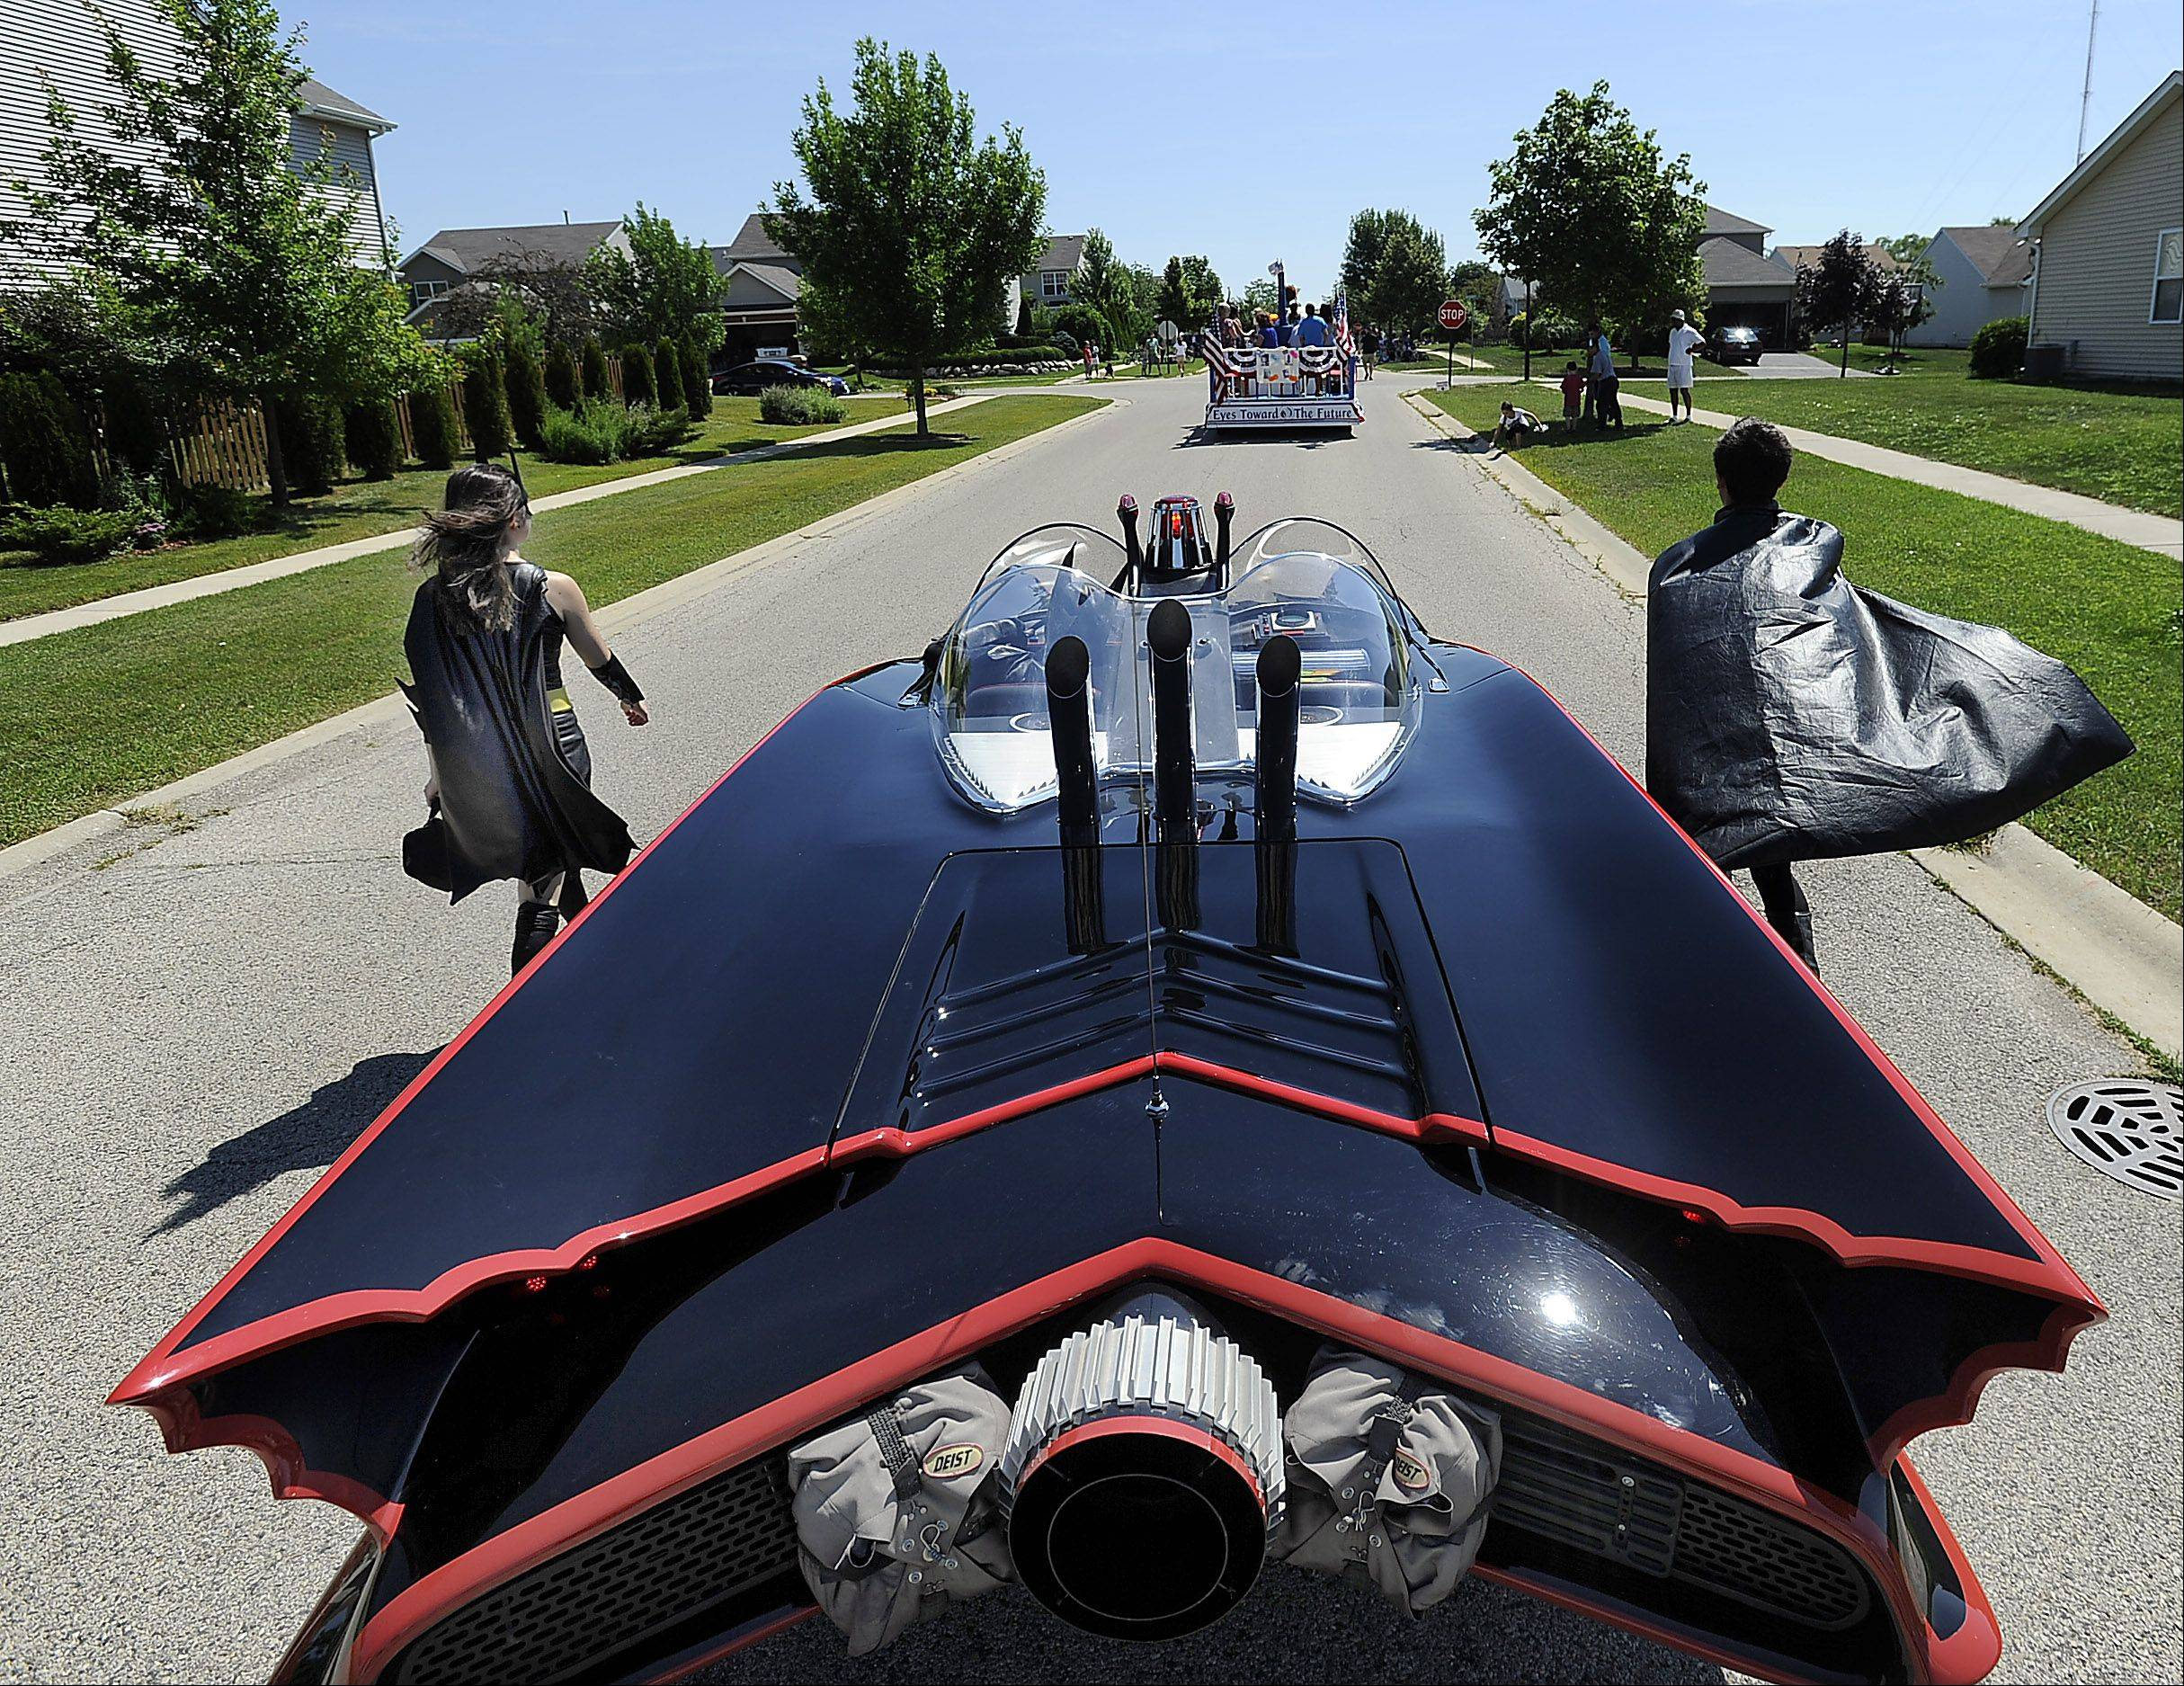 Round Lake Heights Trustee Dominick Mahoney drives the Batmobile in the Round Lake Heights Festival parade Saturday, July 13. It's a fan favorite at the event.